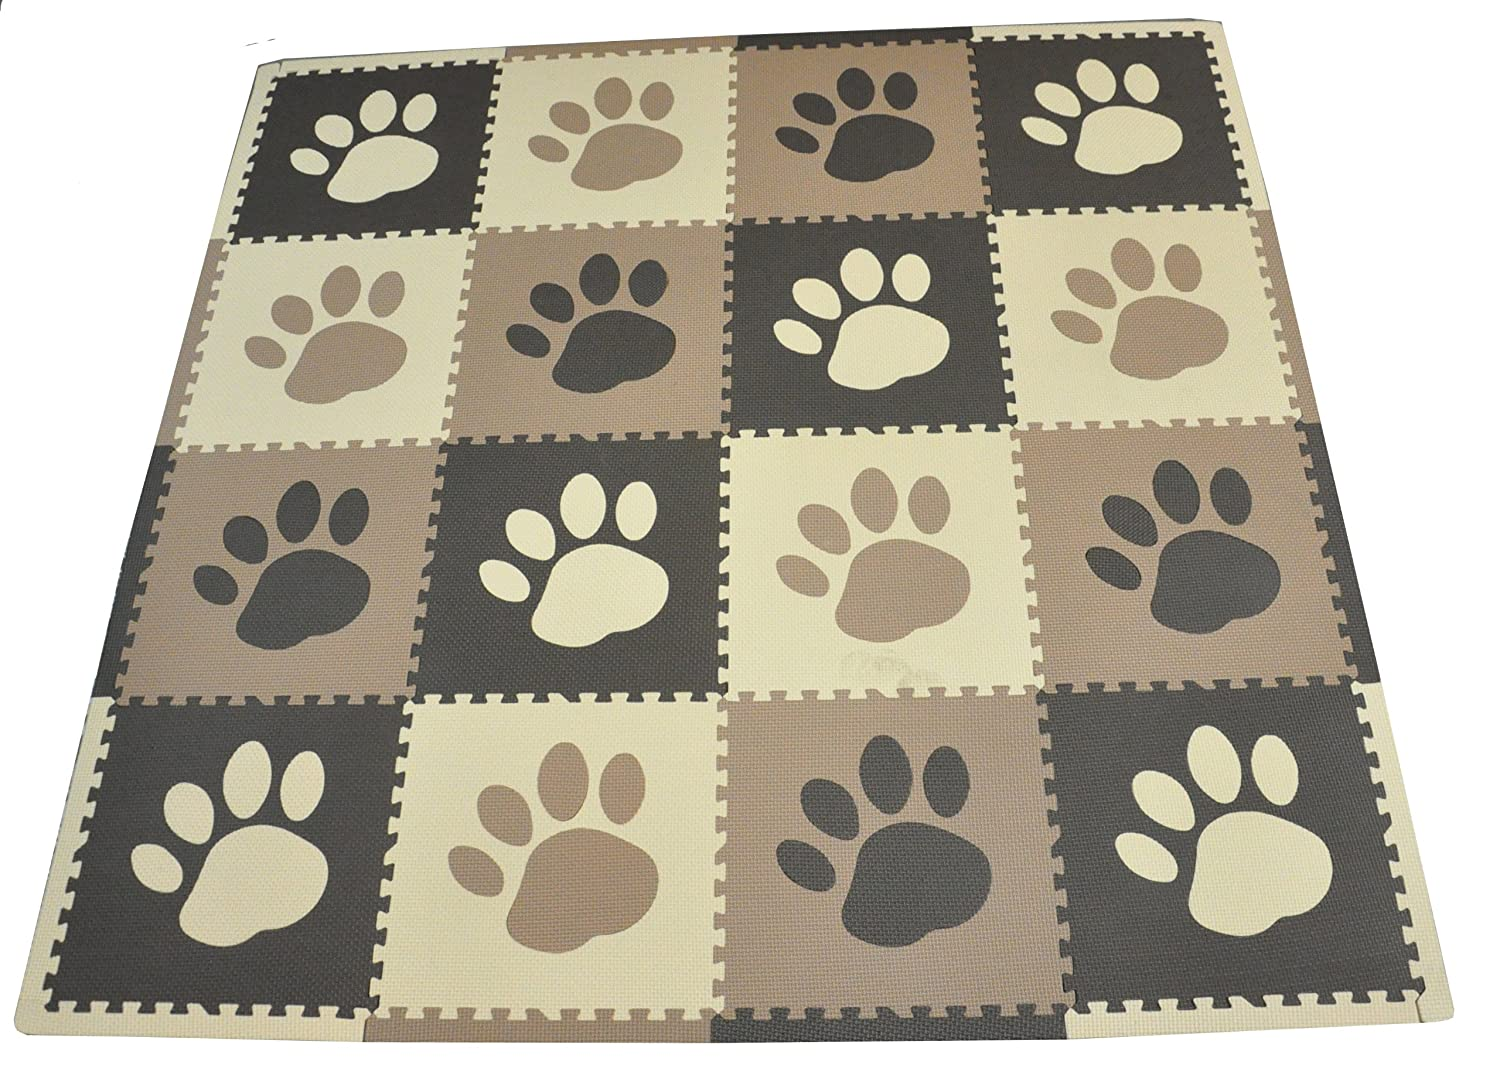 Tadpoles 16 Sq Ft Pawprint Playmat Set